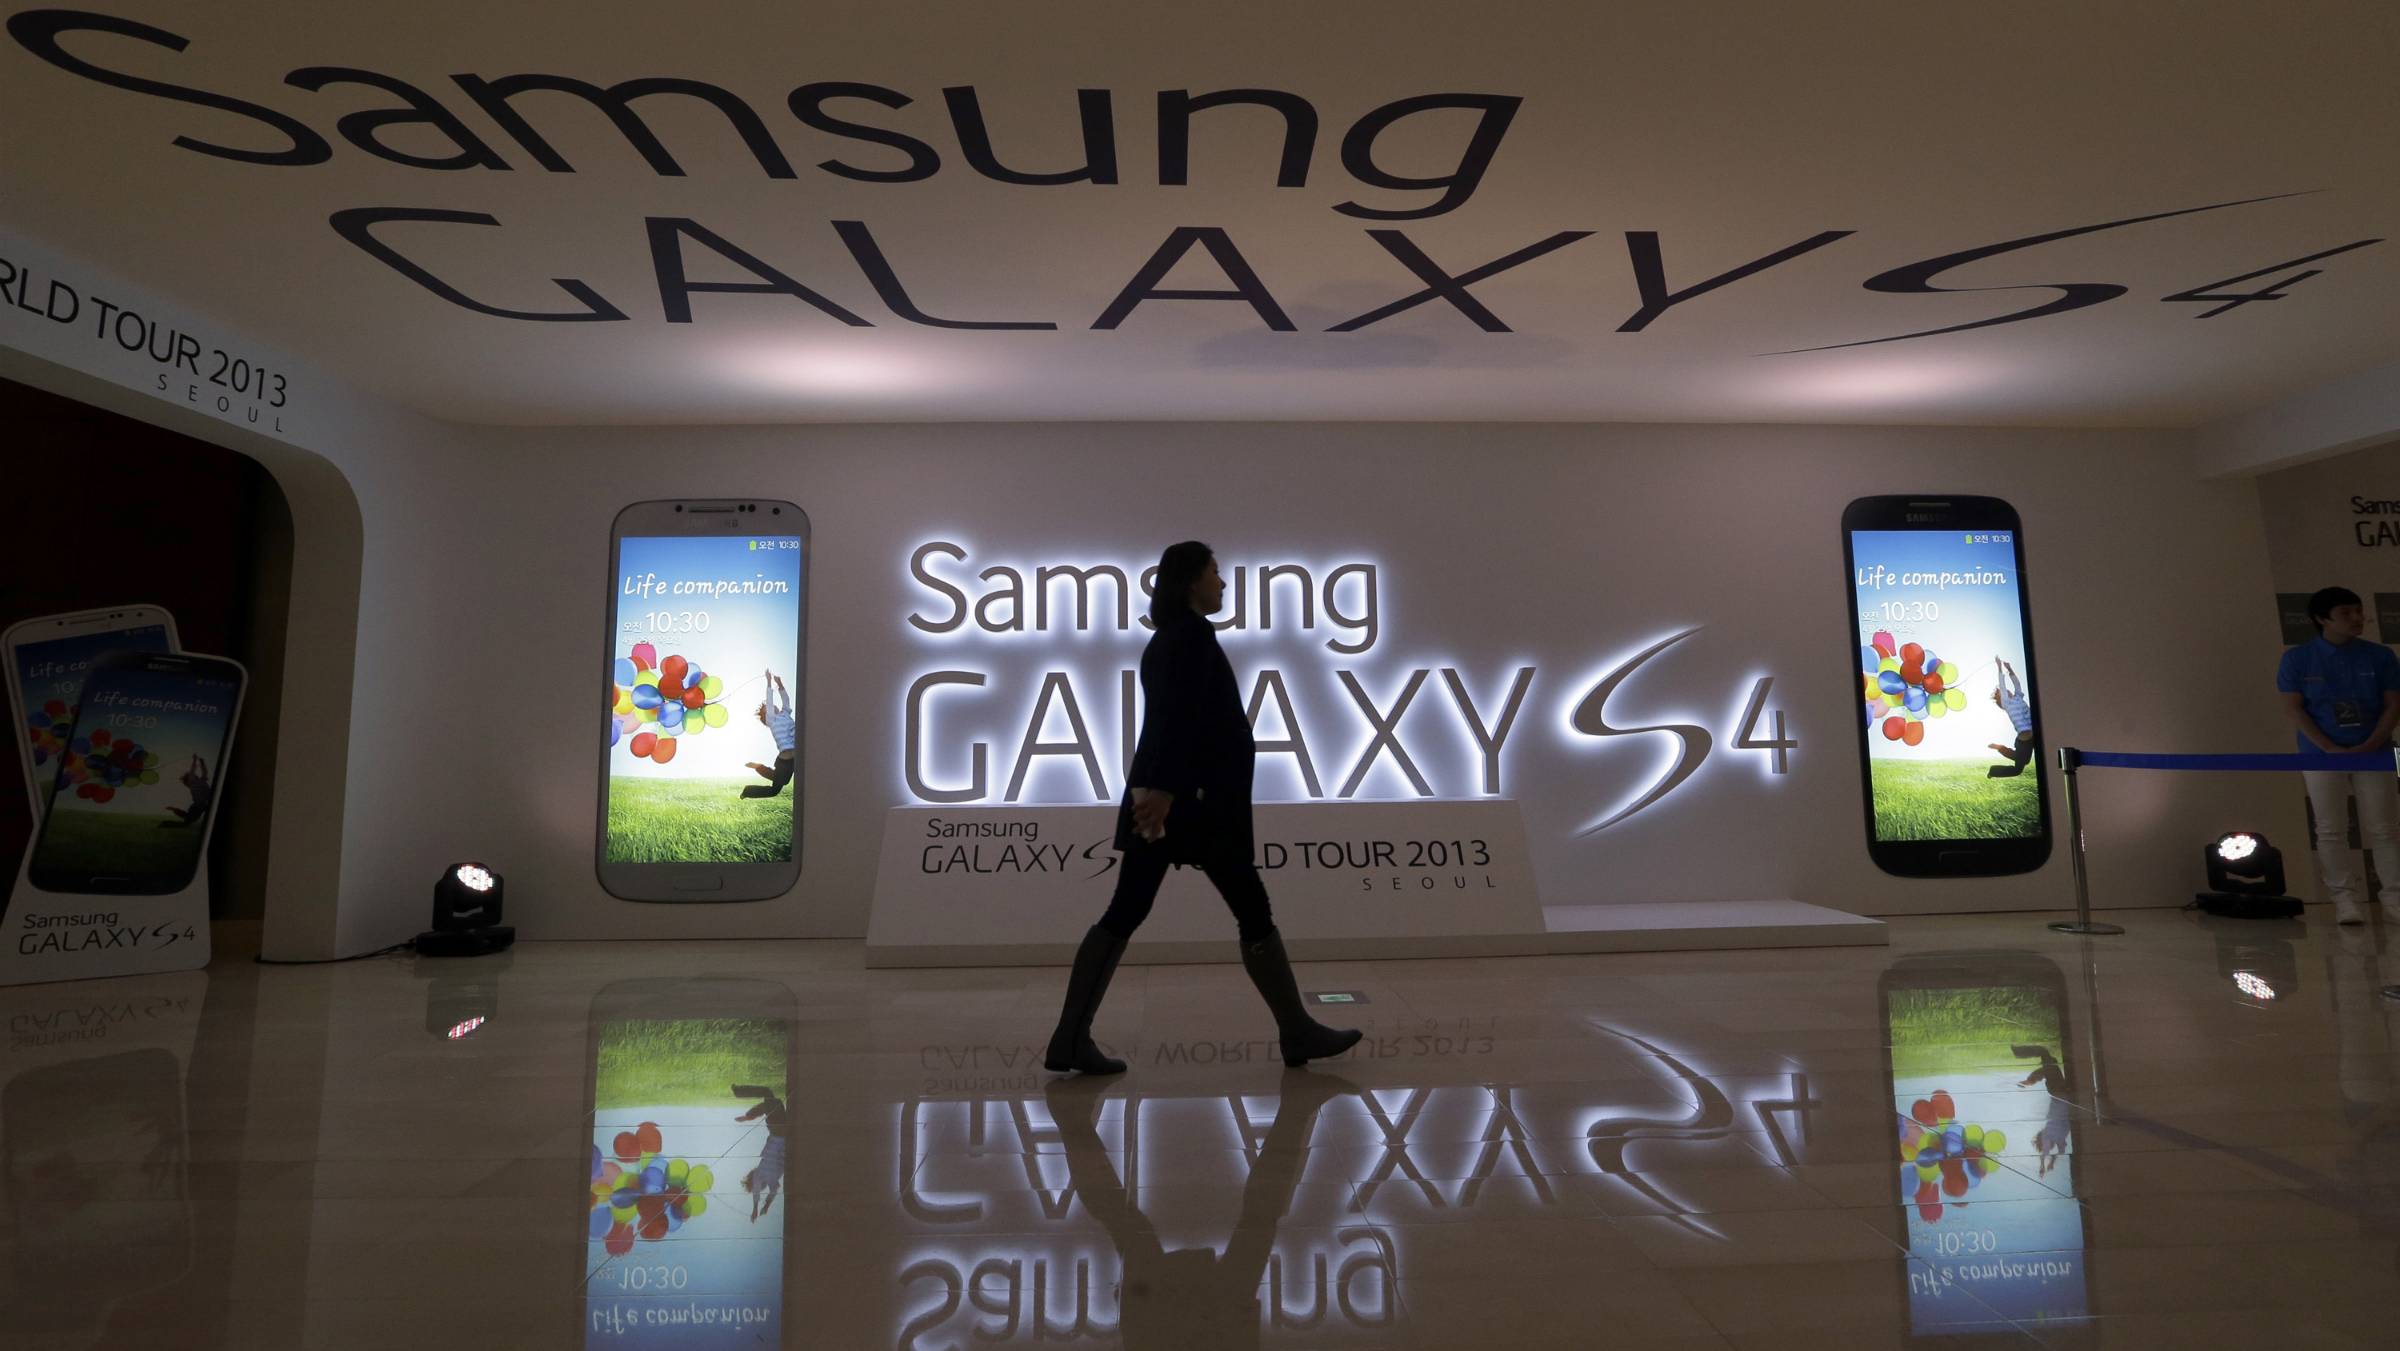 Launch Möbel Samsung Galaxy Launch Lifts Korean Industrial Production Quartz